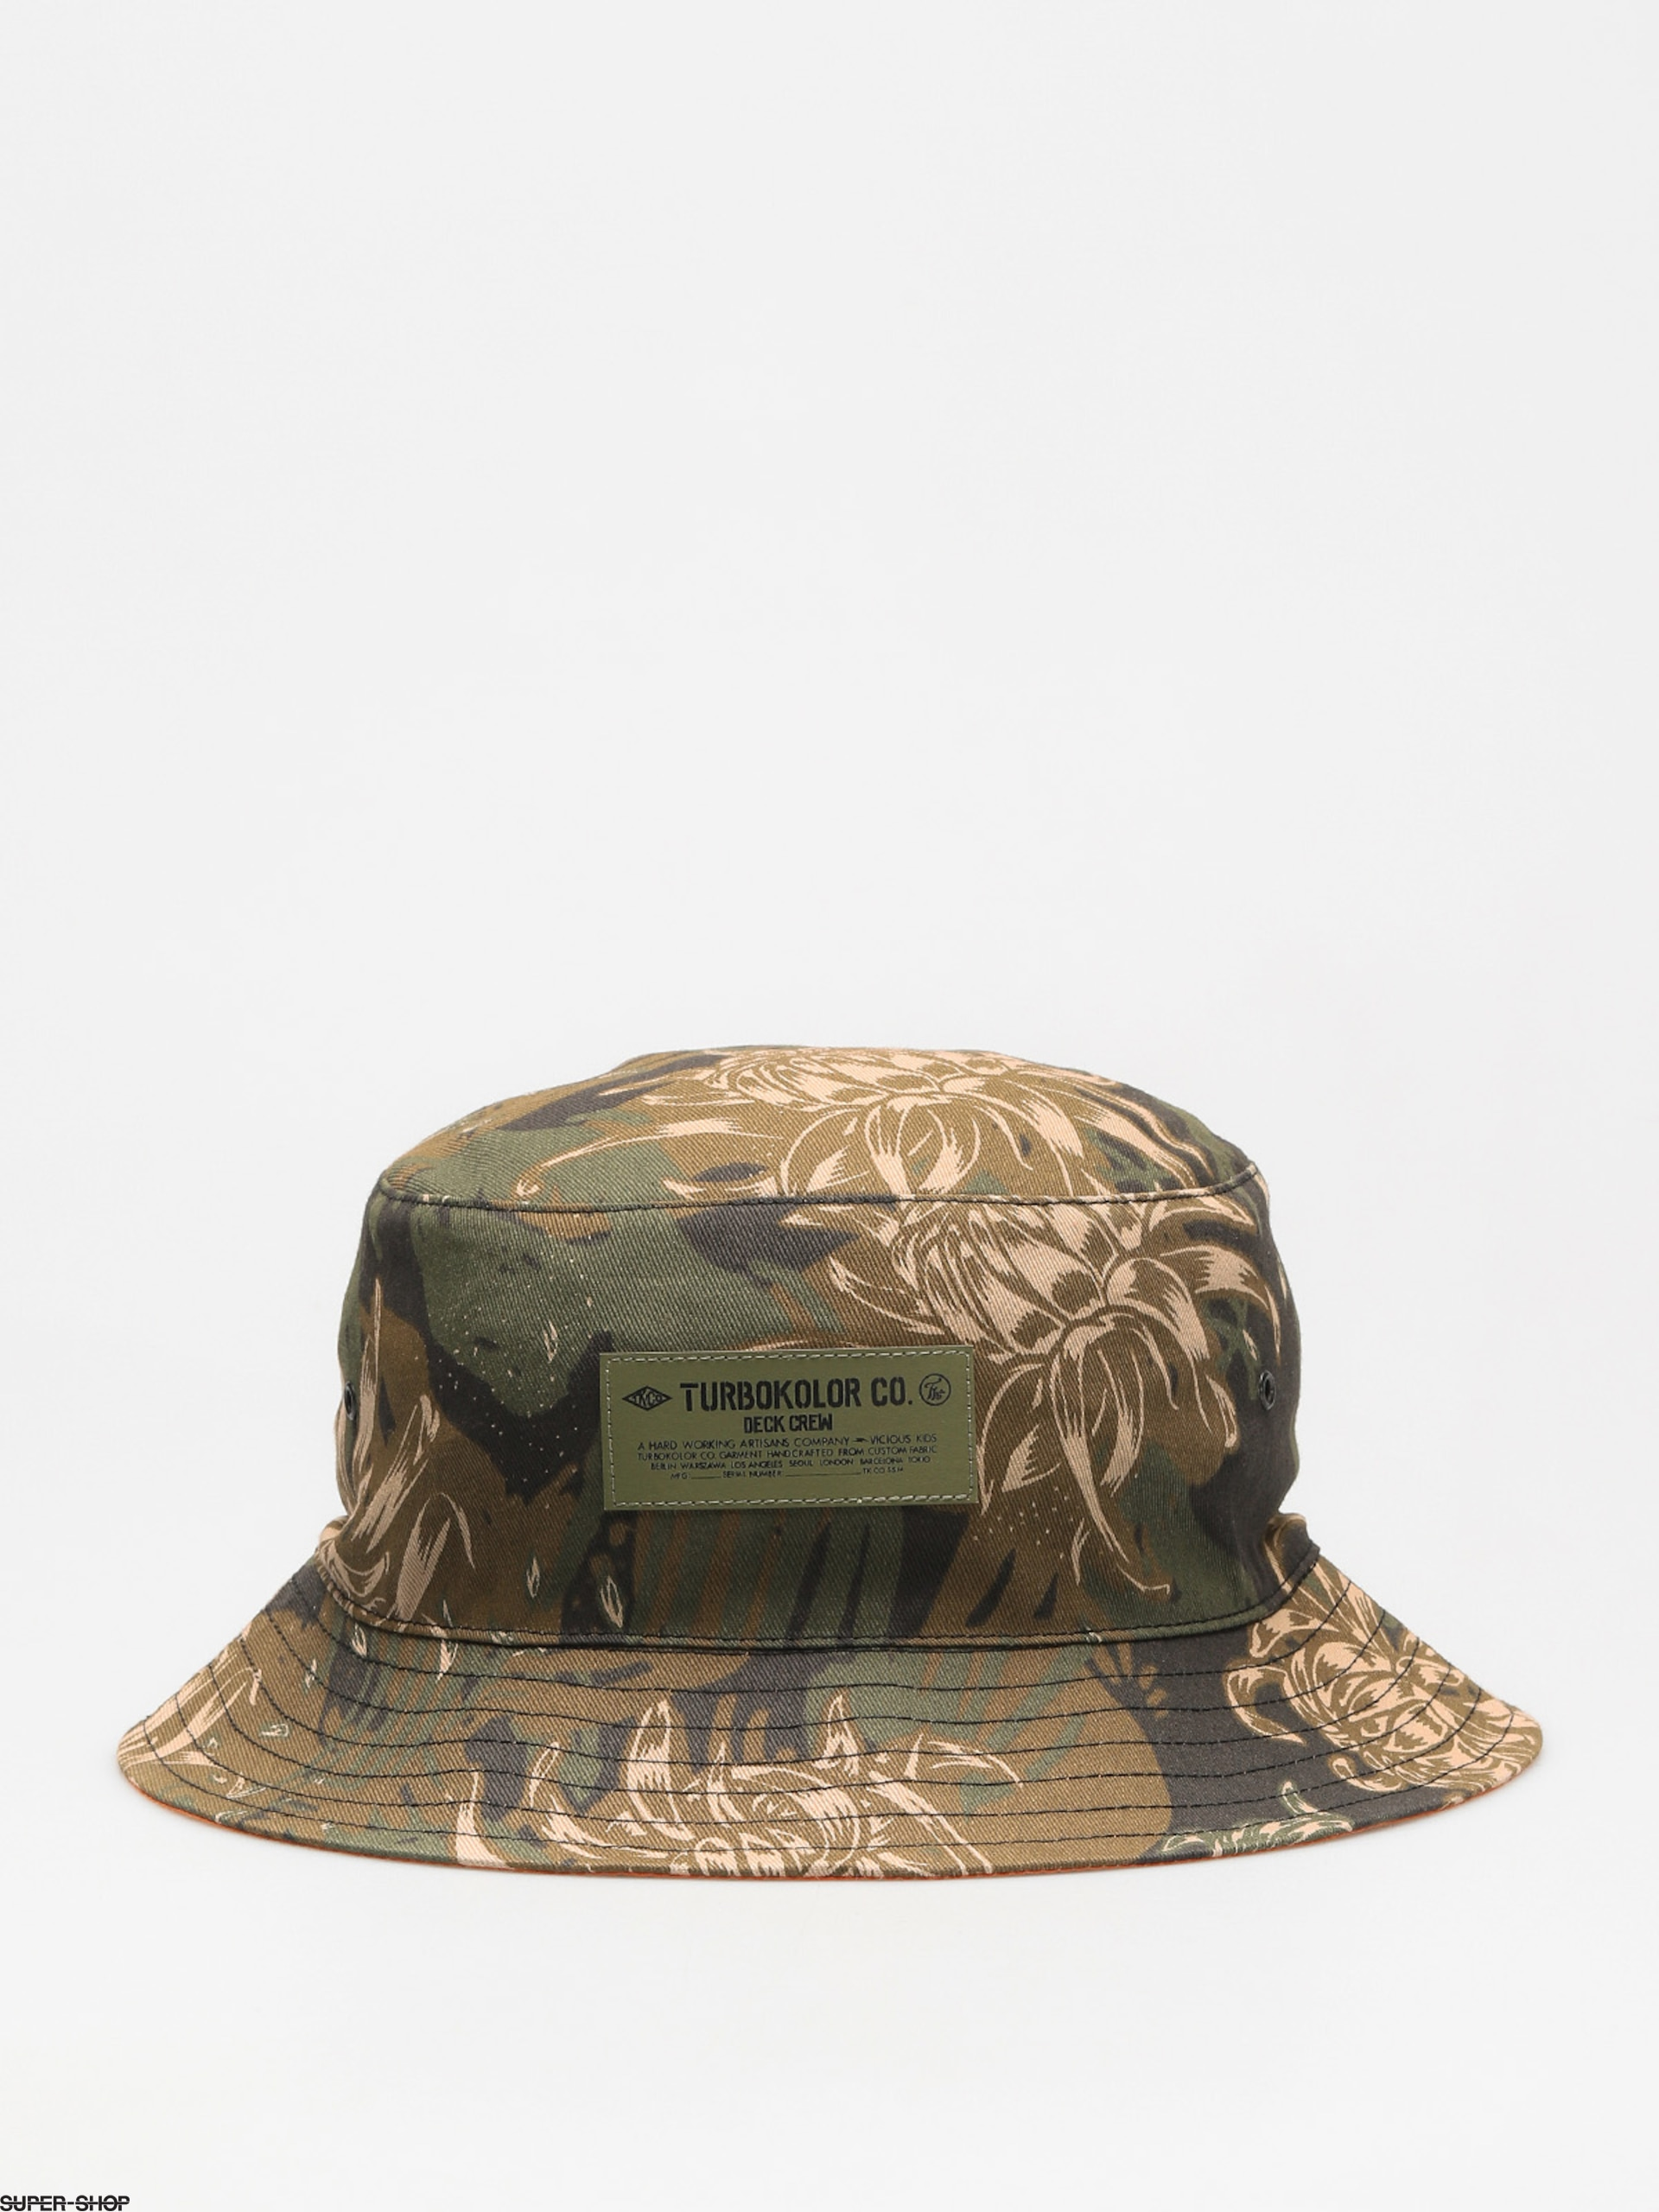 Turbokolor Hat Bucket (camo)